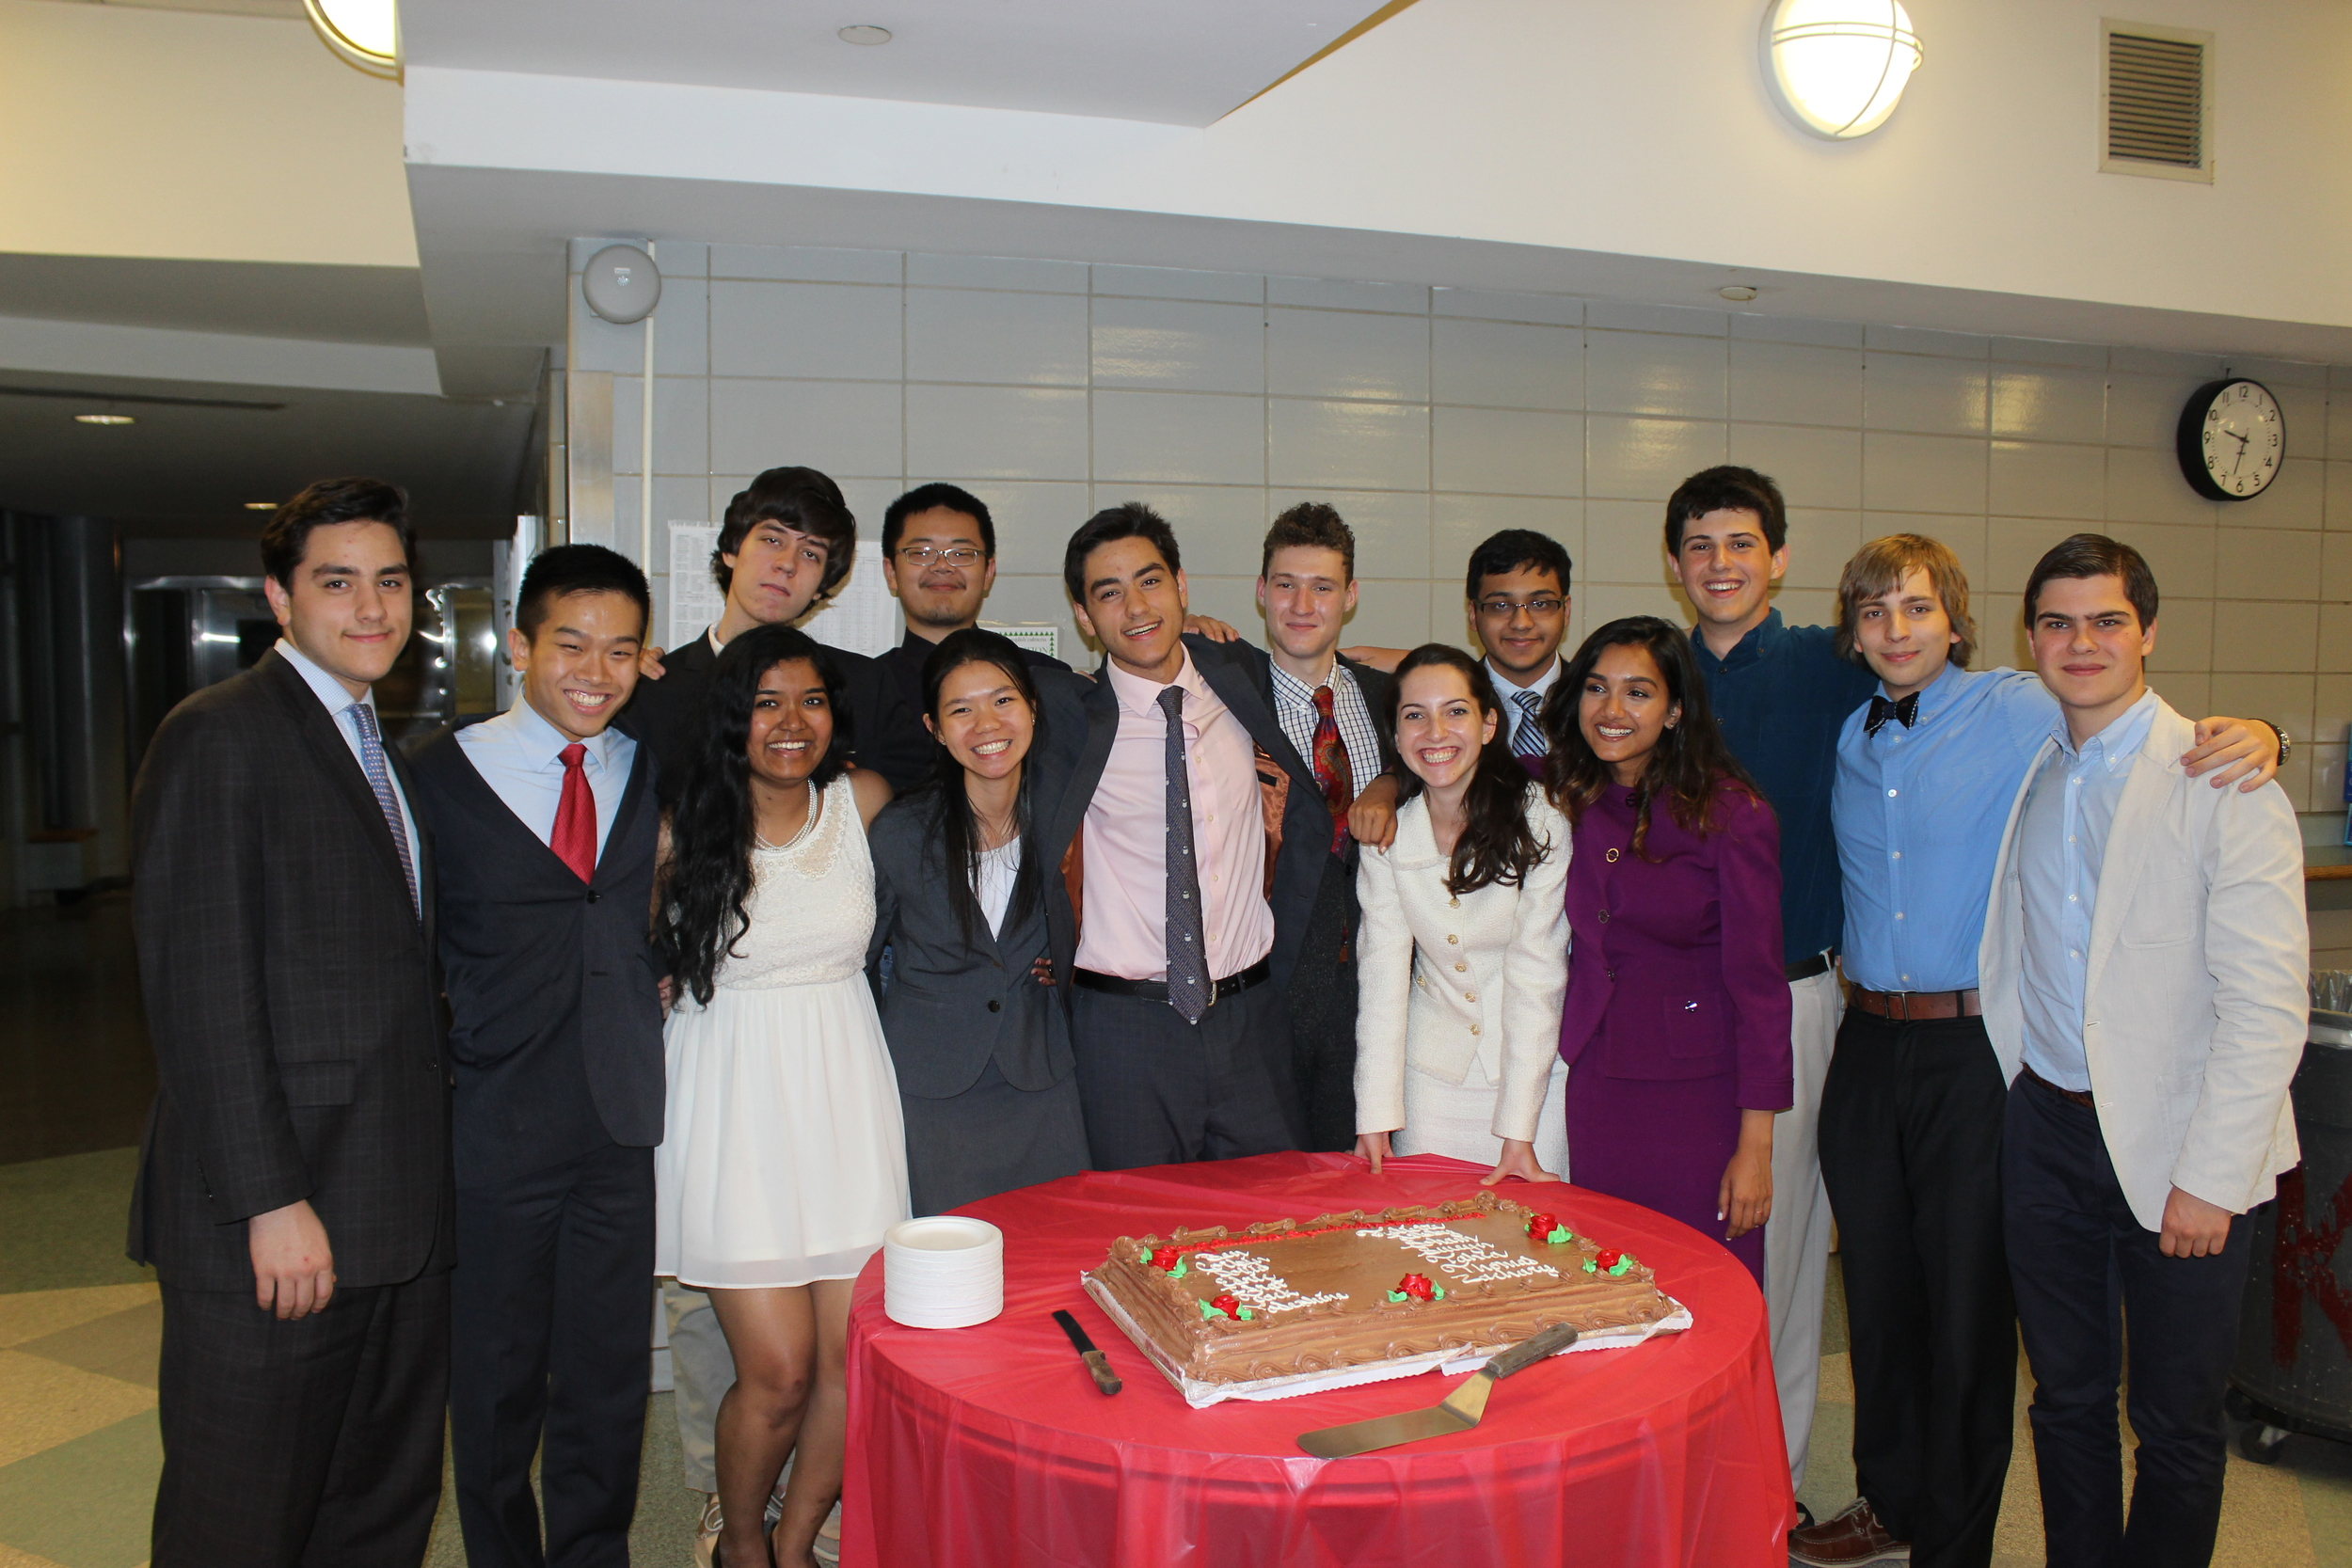 Seniors at the 2014 Annual Dinner